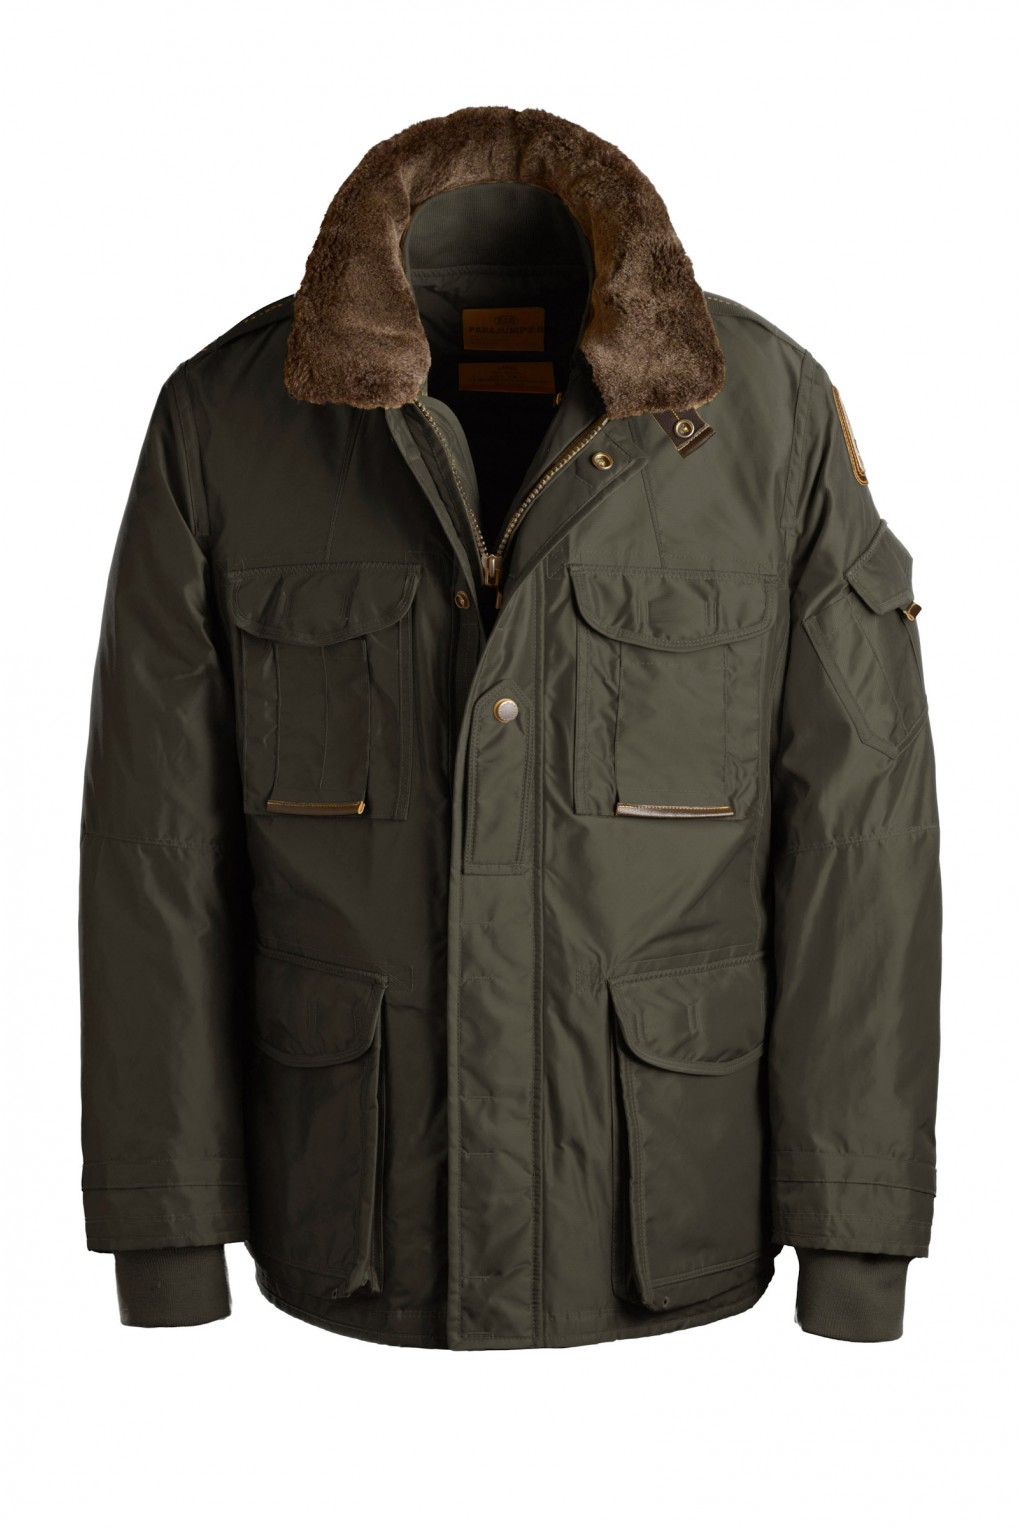 parajumpers PORTLAND man outerwear Olive